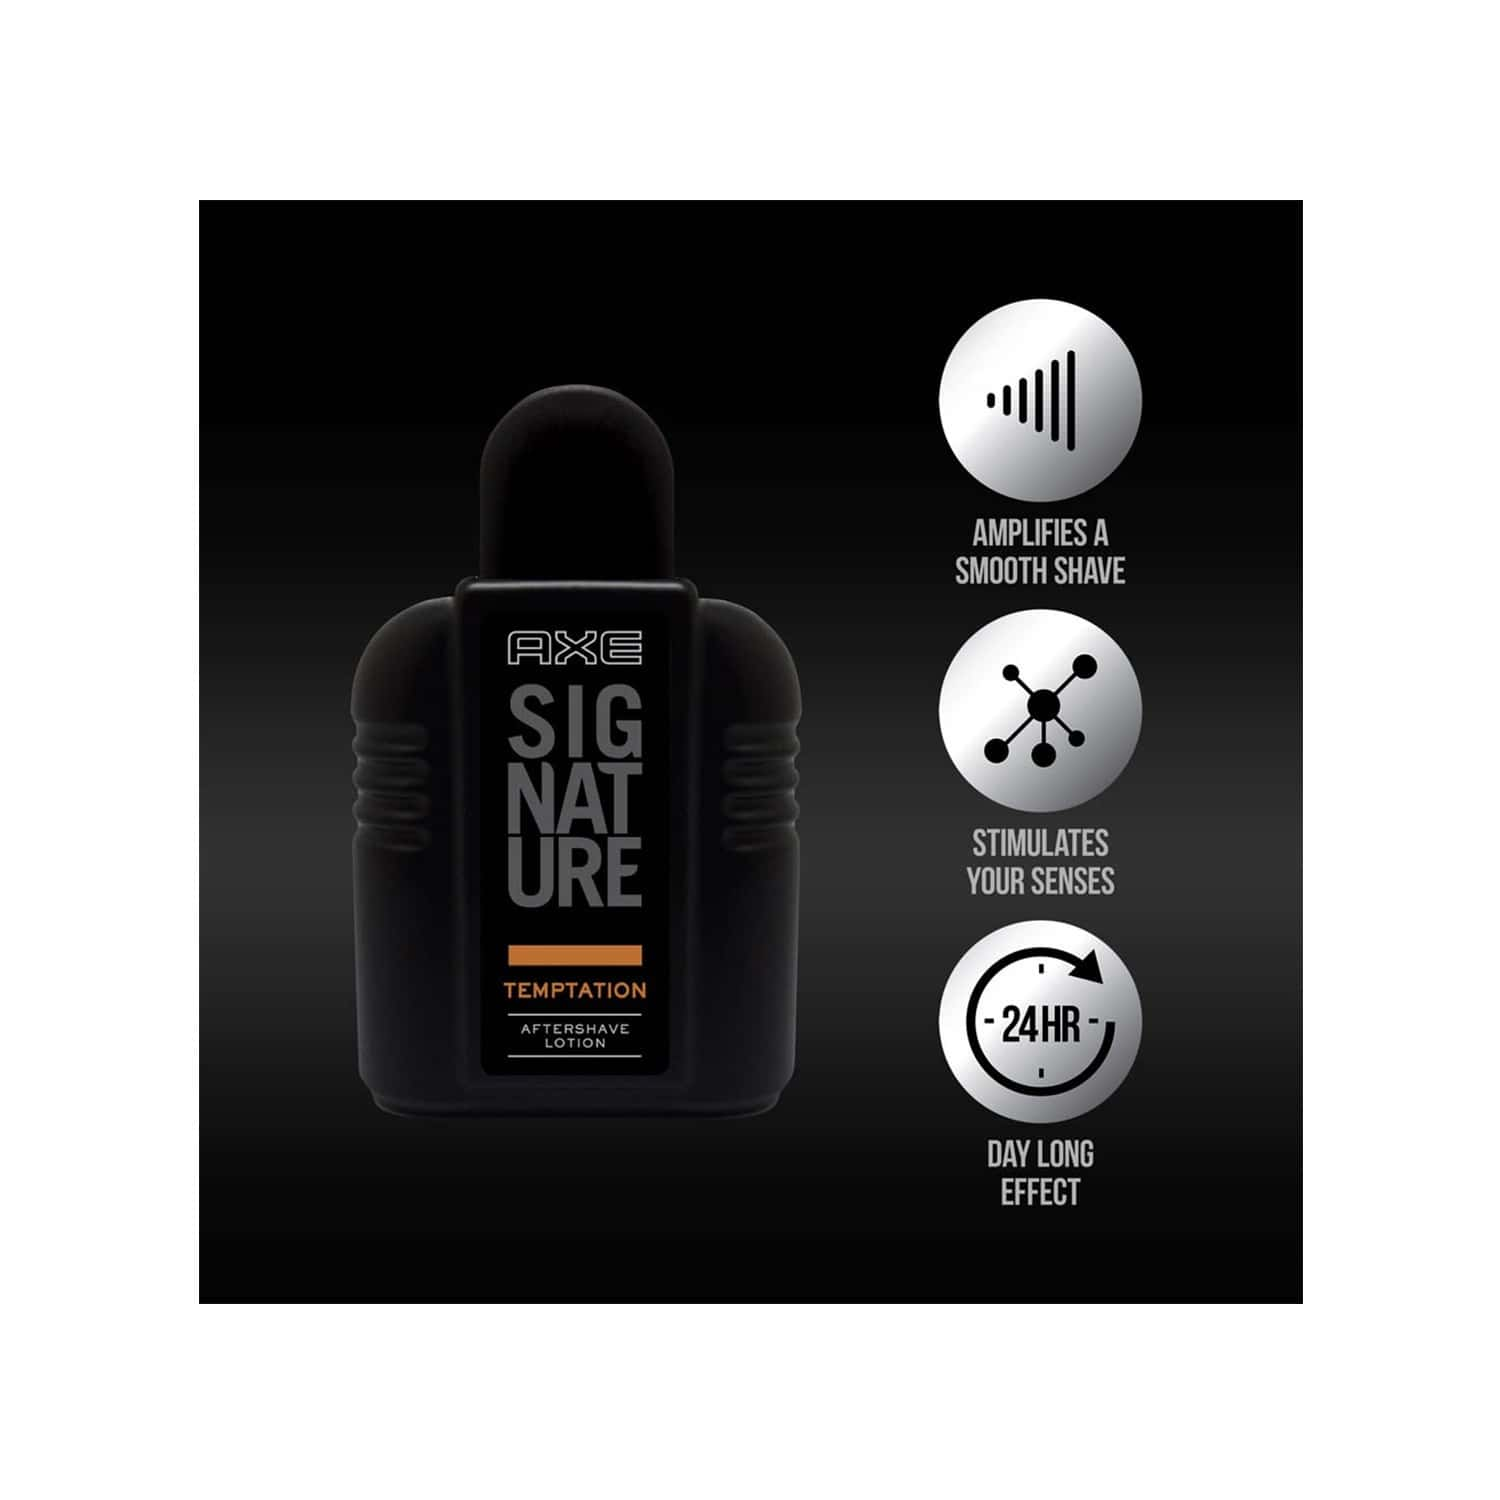 Axe Signature Dark Temptation After Shave Lotion Bottle Of 100 Ml